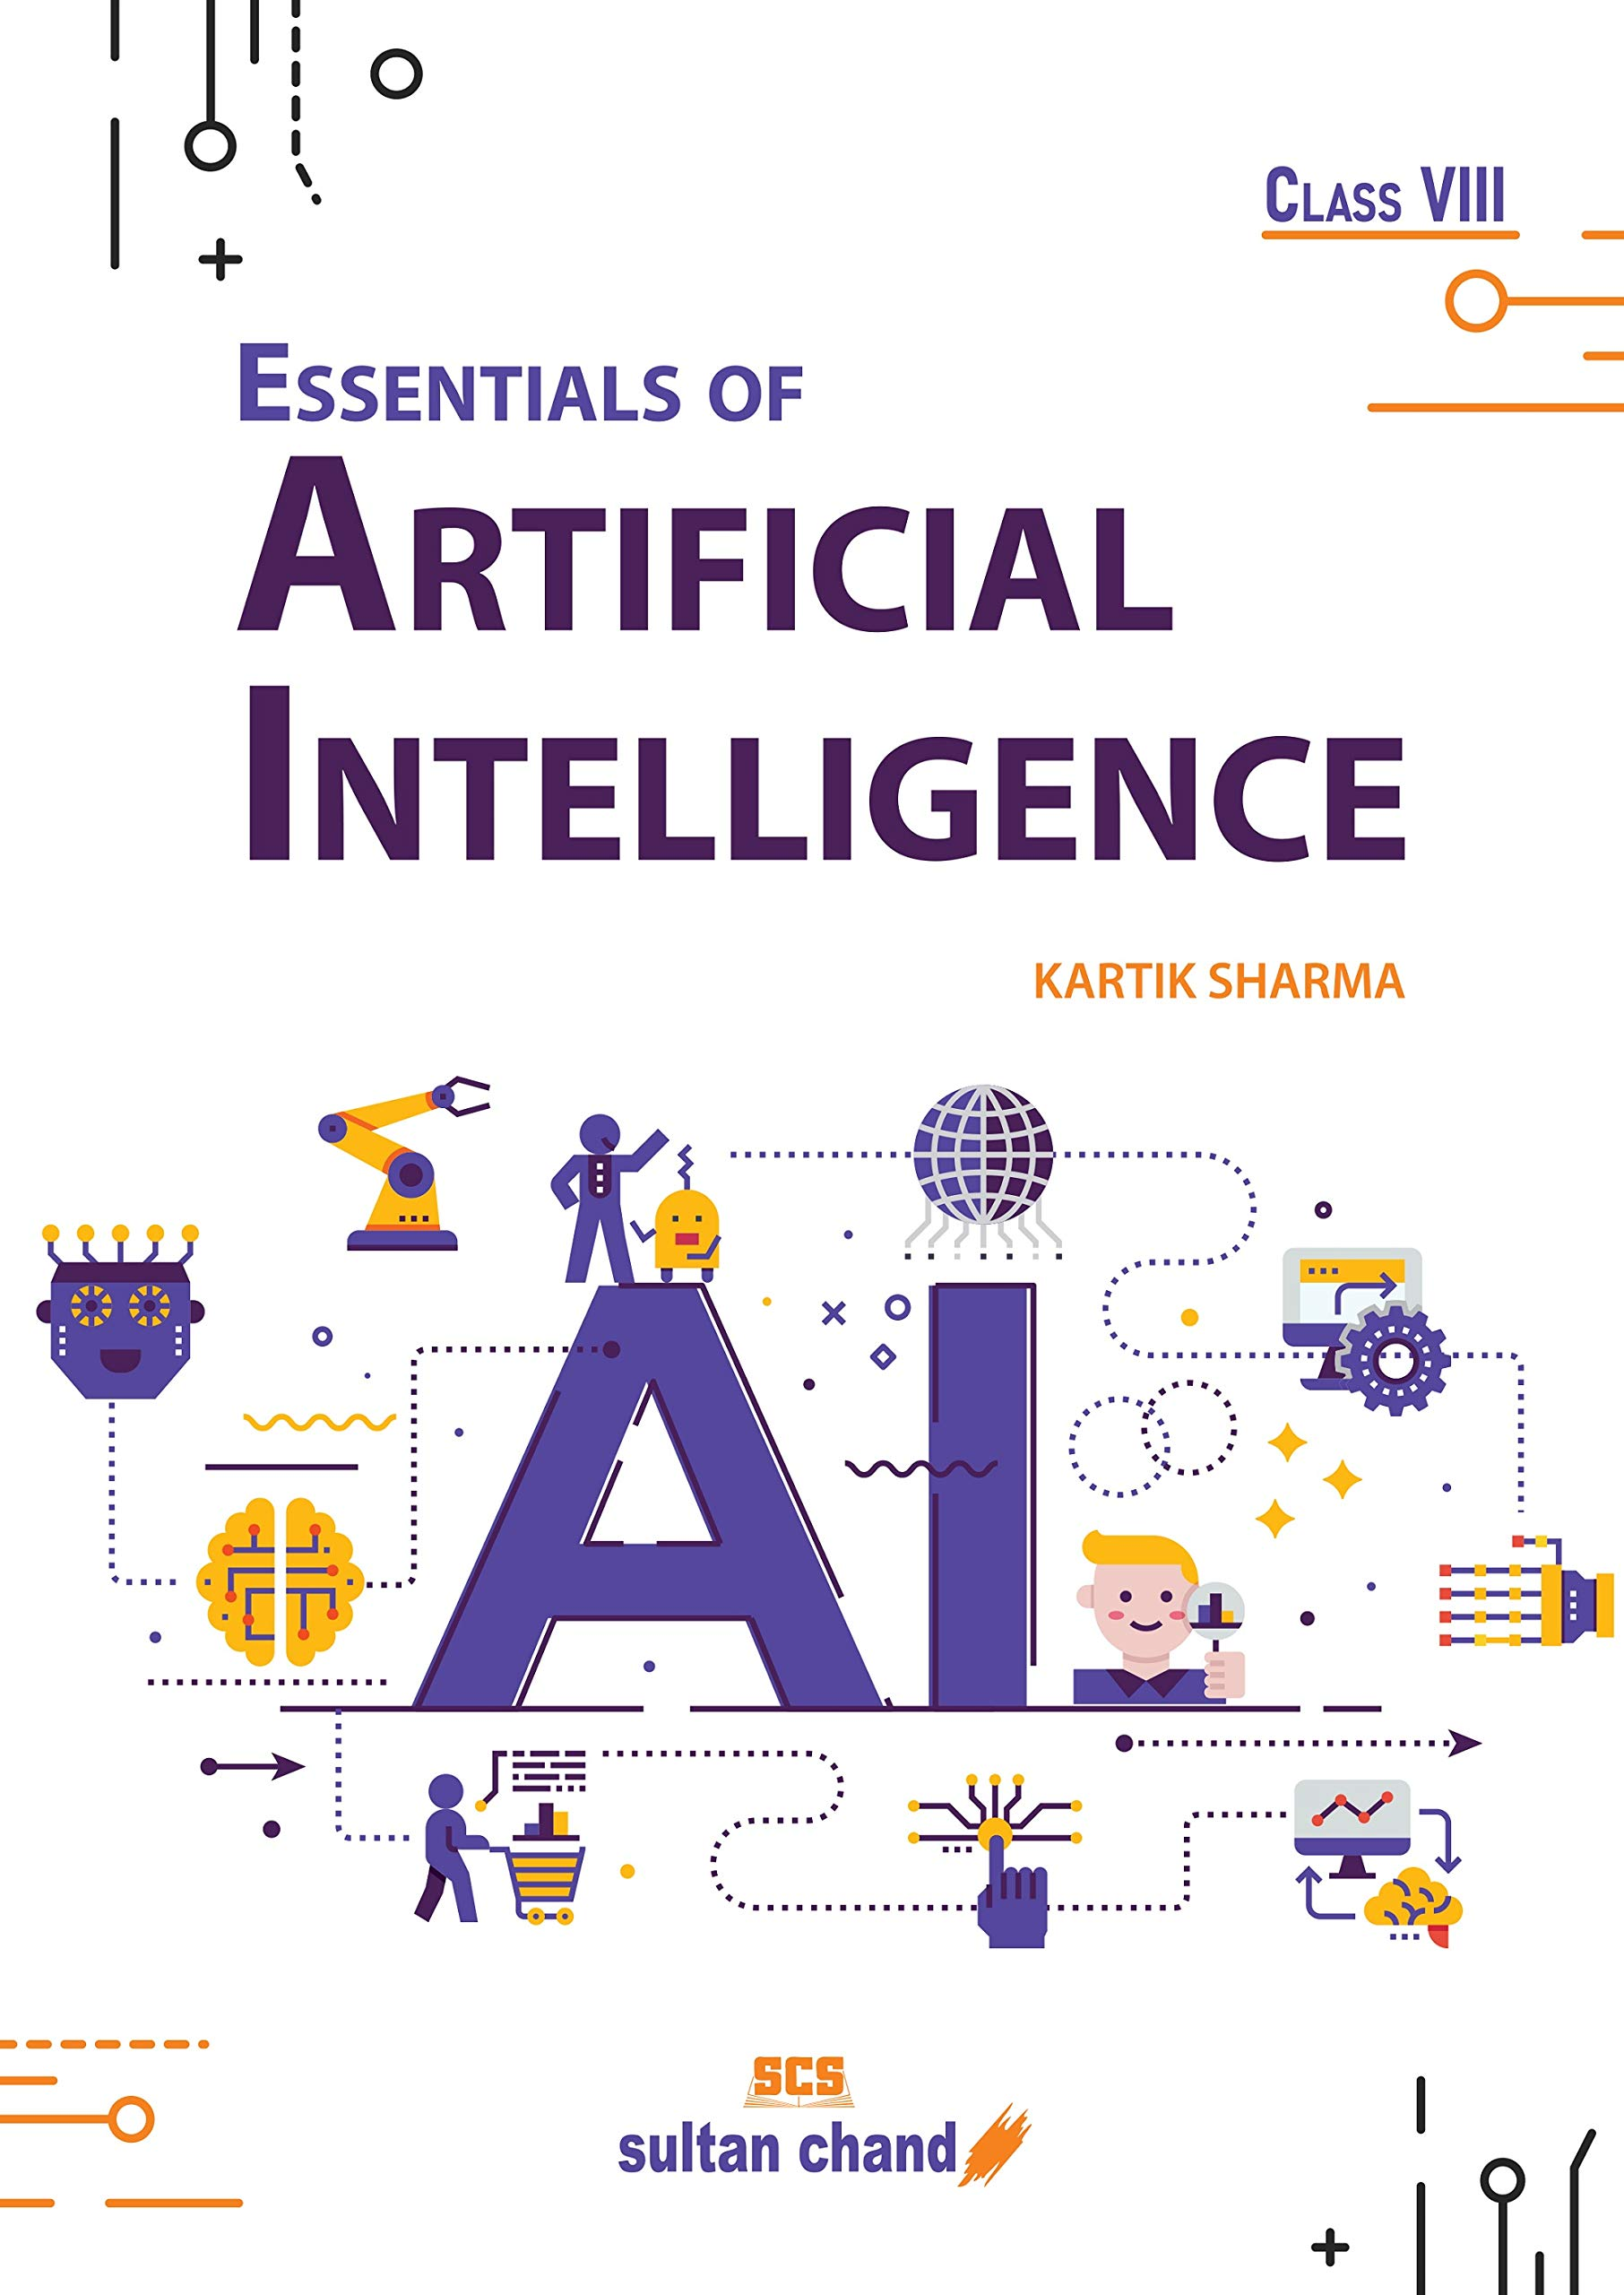 Essentials of Artificial Intelligence: Textbook for CBSE Class 8 (Foreword by Shri Amitabh Kant, CEO, NITI Aayog)